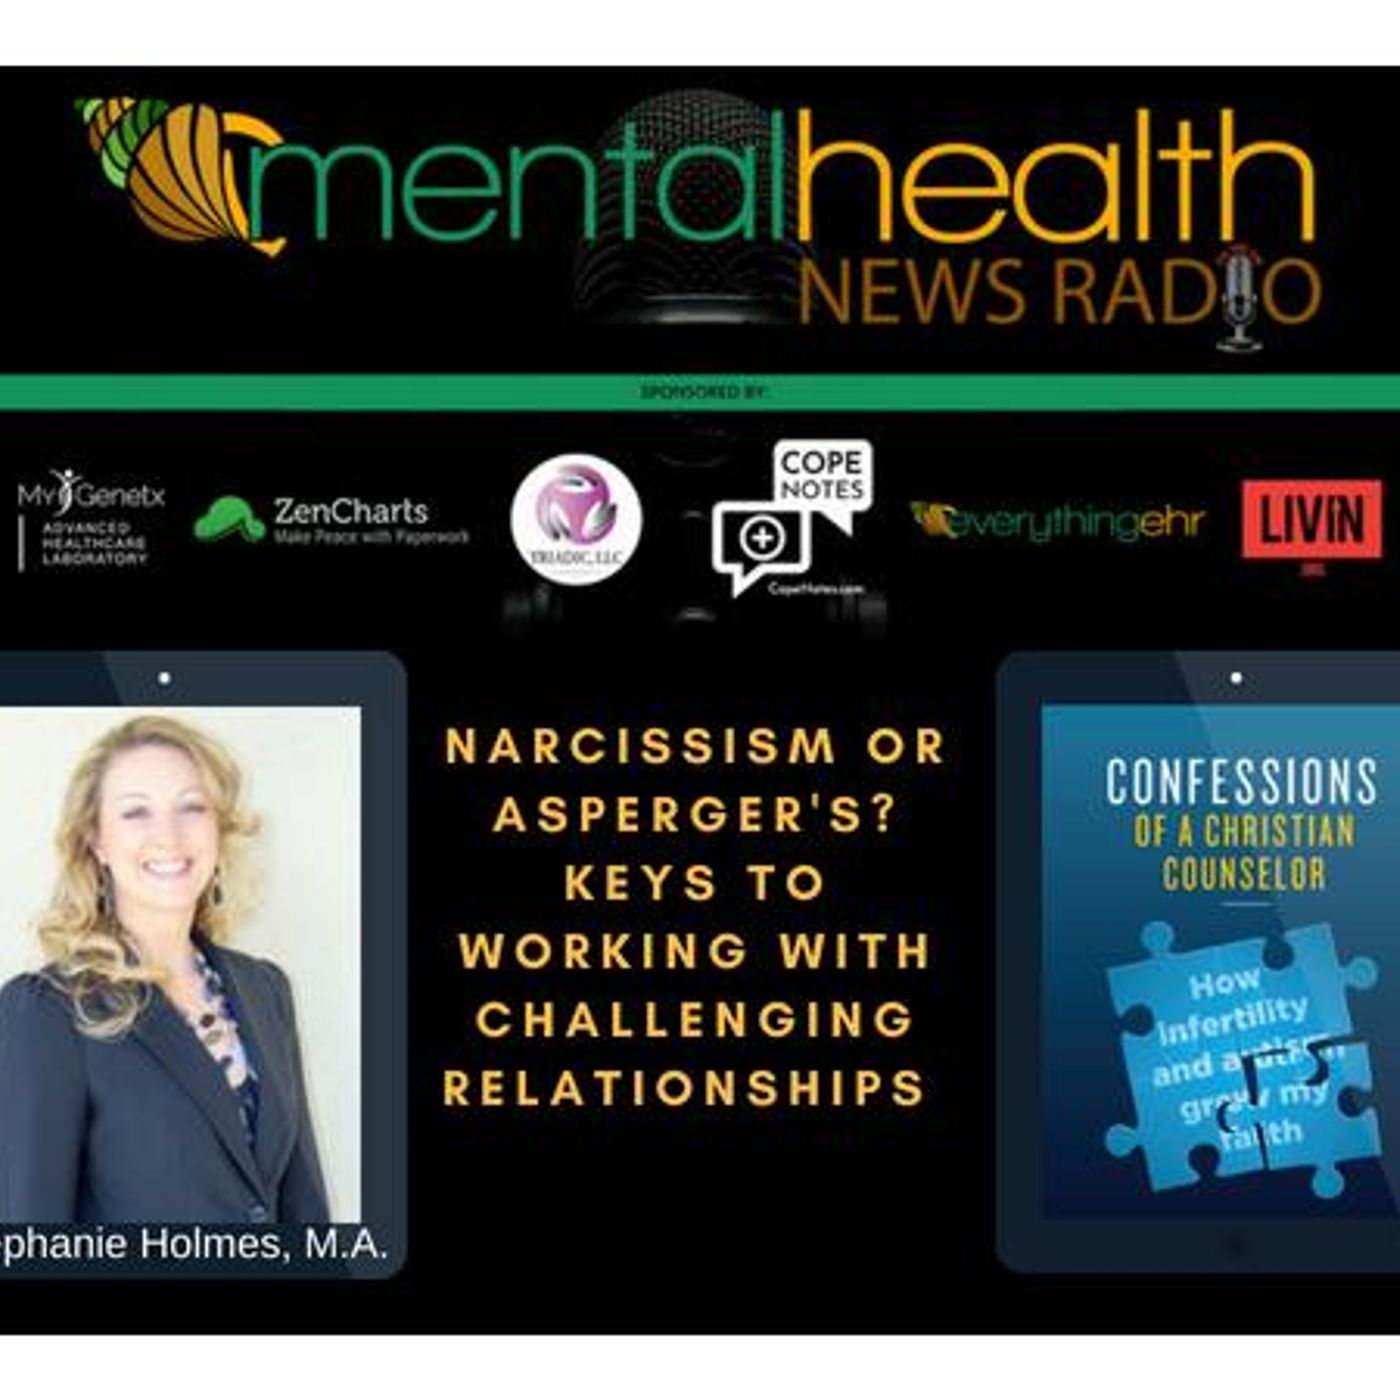 Mental Health News Radio - Narcissism or Asperger's? Keys to Working with Challenging Relationships